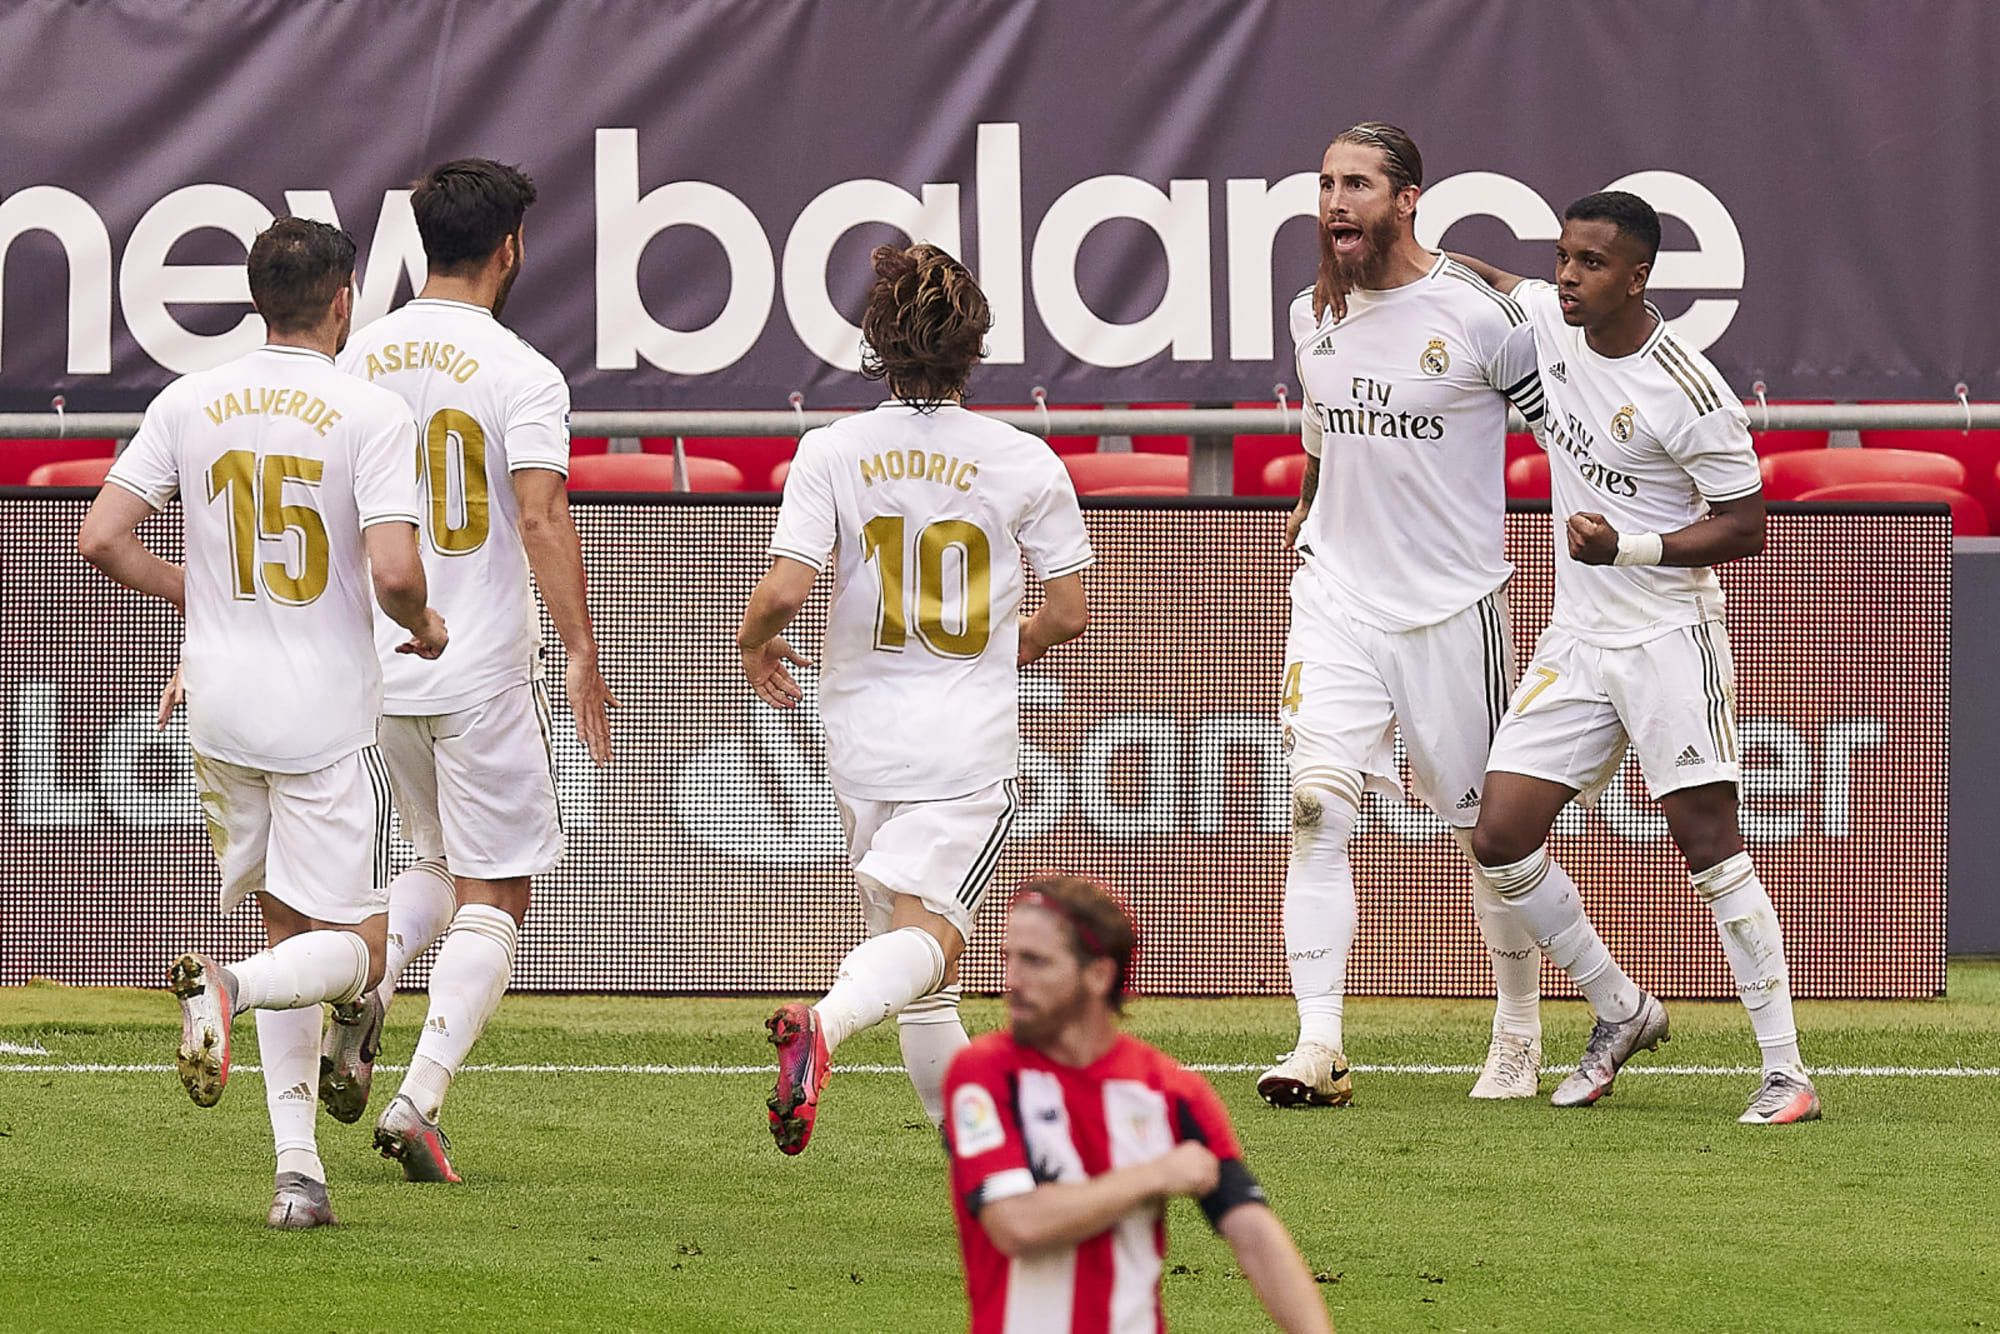 Athletic Bilbao 0-1 Real Madrid: Key talking points & observations